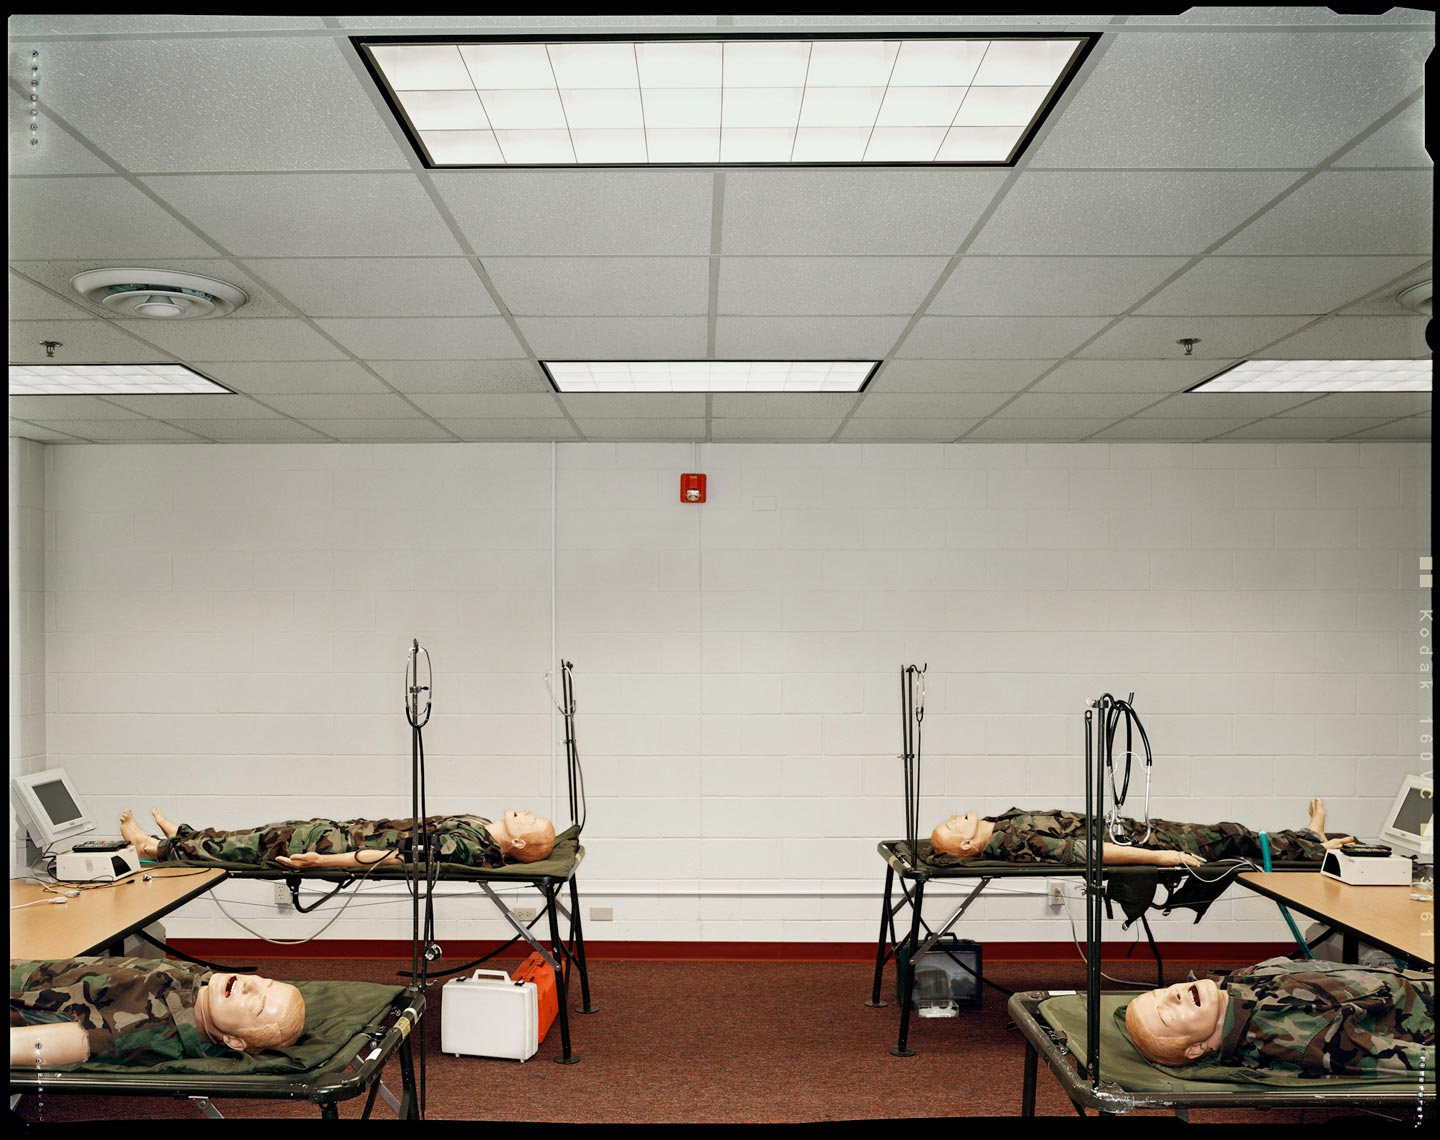 Army Medical Training Facility - San Antonio, Texas - New York Times Magazine